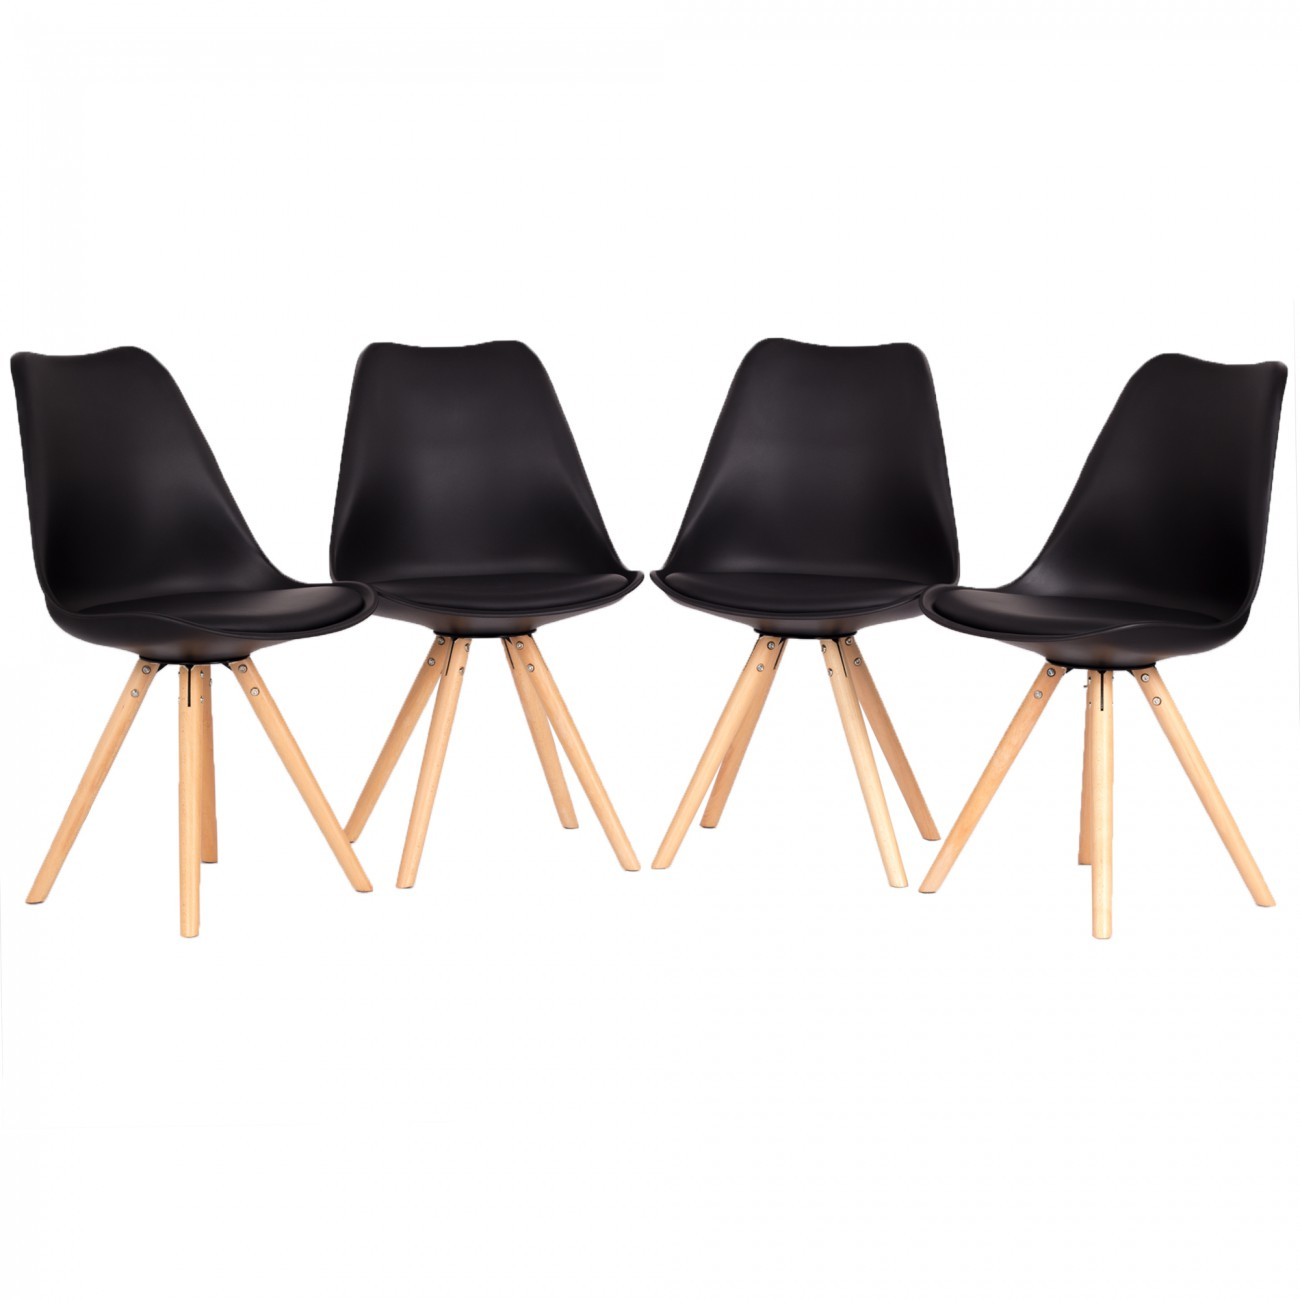 My sit retro stuhl design stuhl mool 4er set in schwarz for Design stuhl hersteller